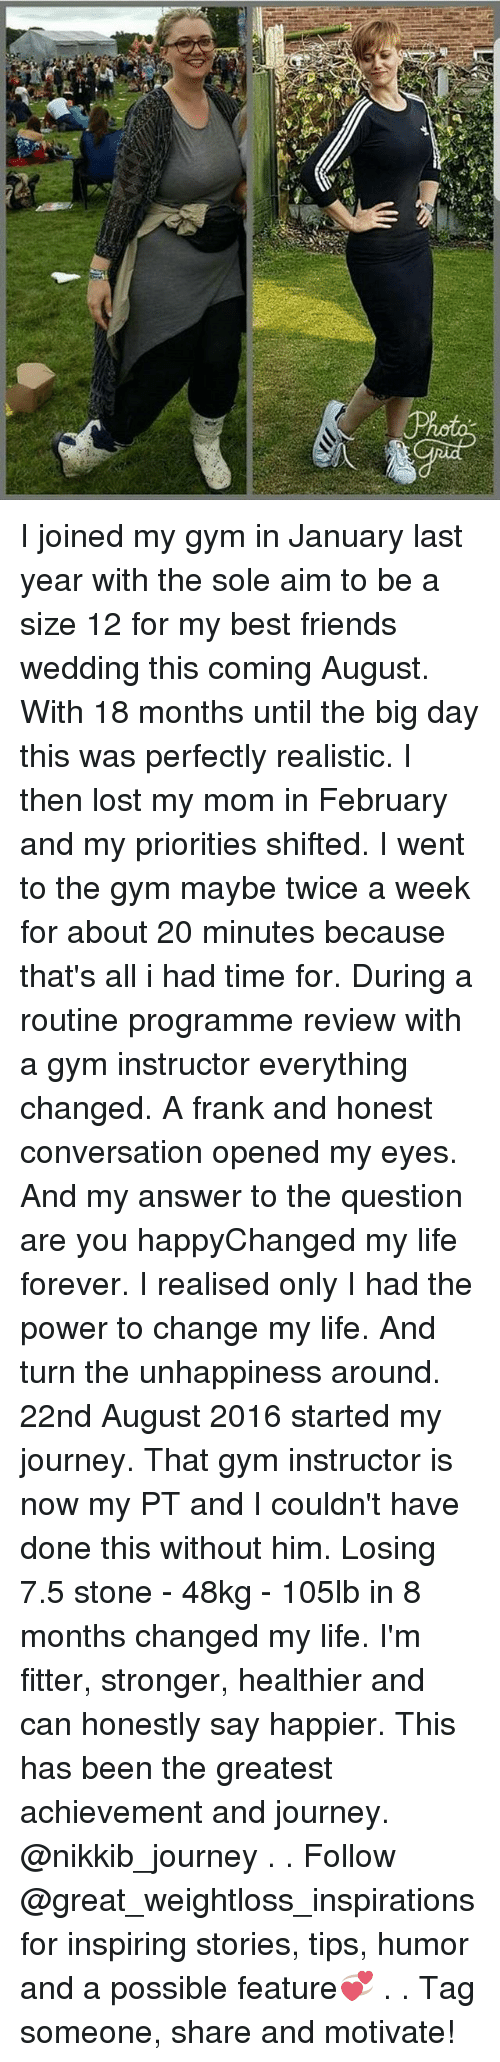 Aimfully: I joined my gym in January last year with the sole aim to be a size 12 for my best friends wedding this coming August. With 18 months until the big day this was perfectly realistic. I then lost my mom in February and my priorities shifted. I went to the gym maybe twice a week for about 20 minutes because that's all i had time for. During a routine programme review with a gym instructor everything changed. A frank and honest conversation opened my eyes. And my answer to the question are you happyChanged my life forever. I realised only I had the power to change my life. And turn the unhappiness around. 22nd August 2016 started my journey. That gym instructor is now my PT and I couldn't have done this without him. Losing 7.5 stone - 48kg - 105lb in 8 months changed my life. I'm fitter, stronger, healthier and can honestly say happier. This has been the greatest achievement and journey. @nikkib_journey . . Follow @great_weightloss_inspirations for inspiring stories, tips, humor and a possible feature💞 . . Tag someone, share and motivate!